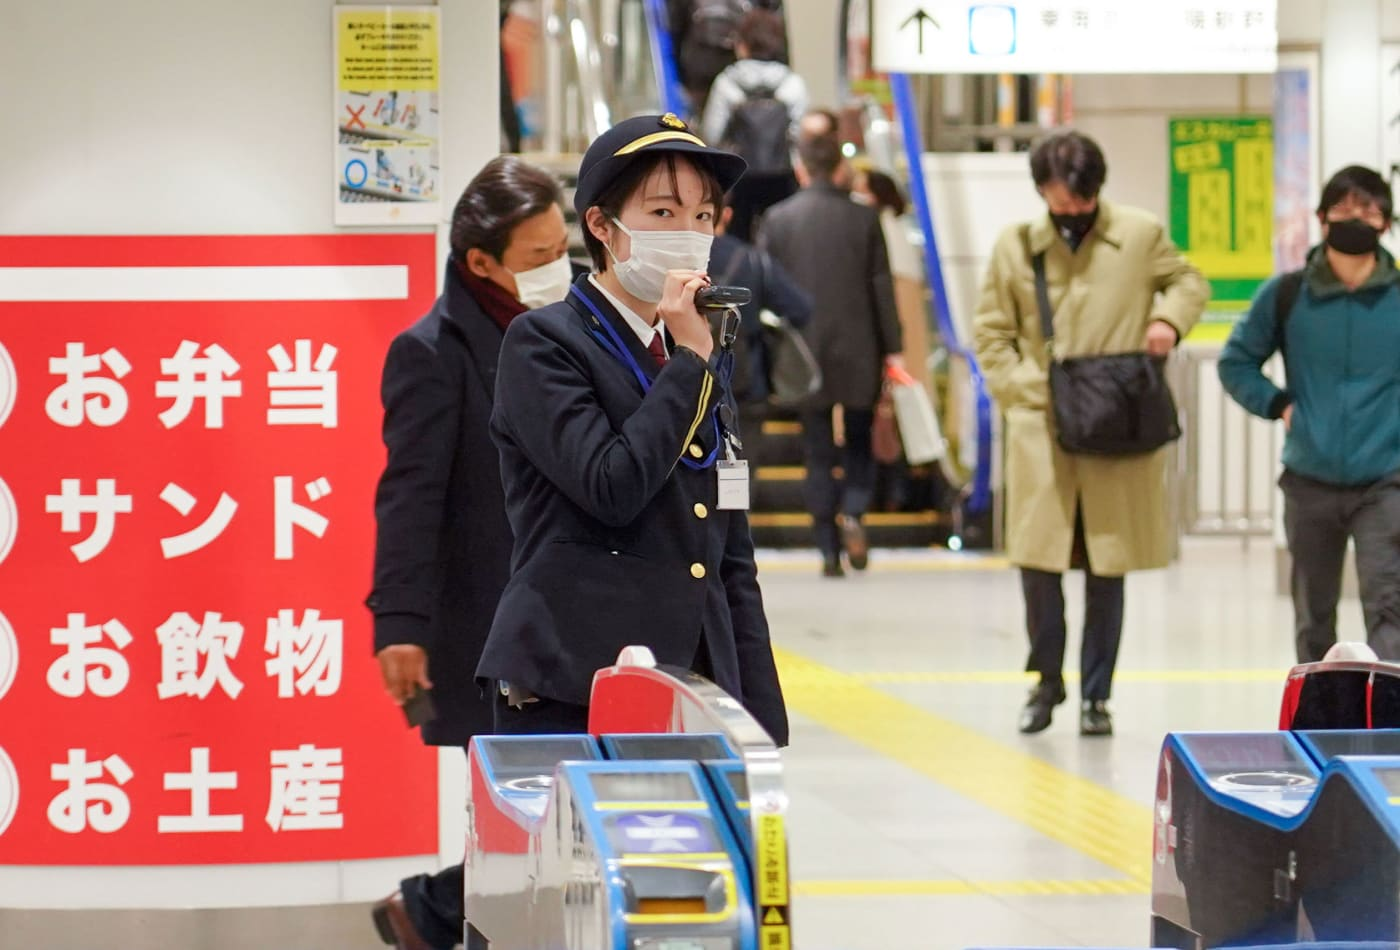 Japan has found a new Covid variant. Here's how it compares to virus strains in the UK, South Africa